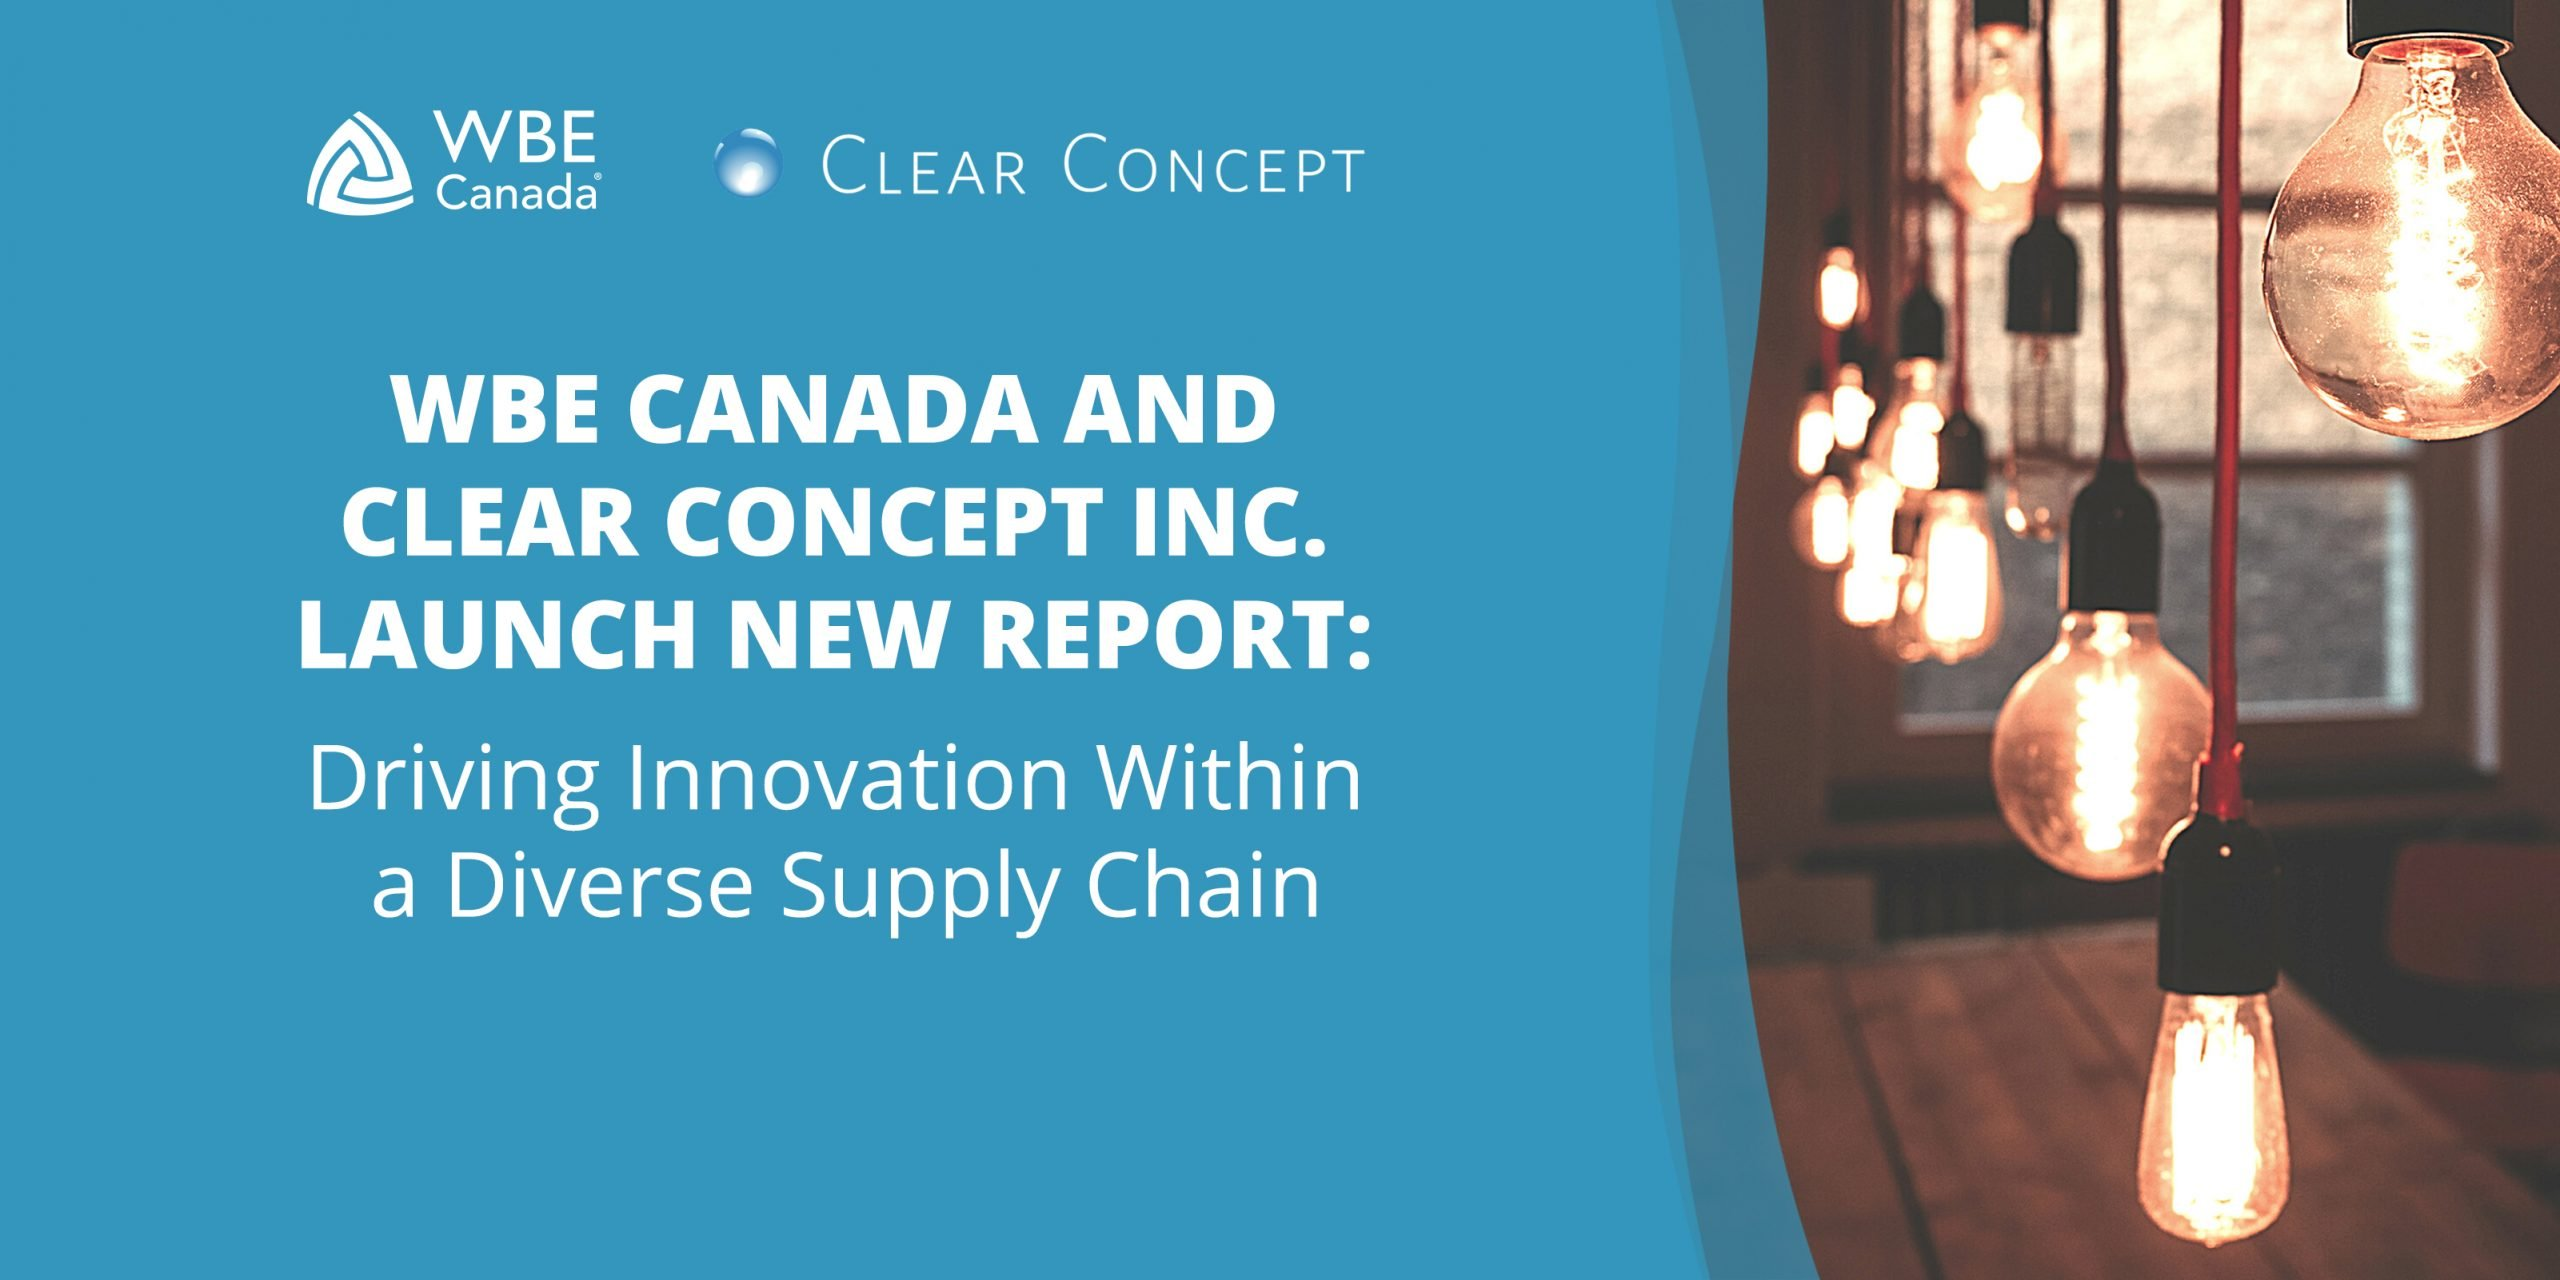 Driving Innovation Within a Diverse Supply Chain